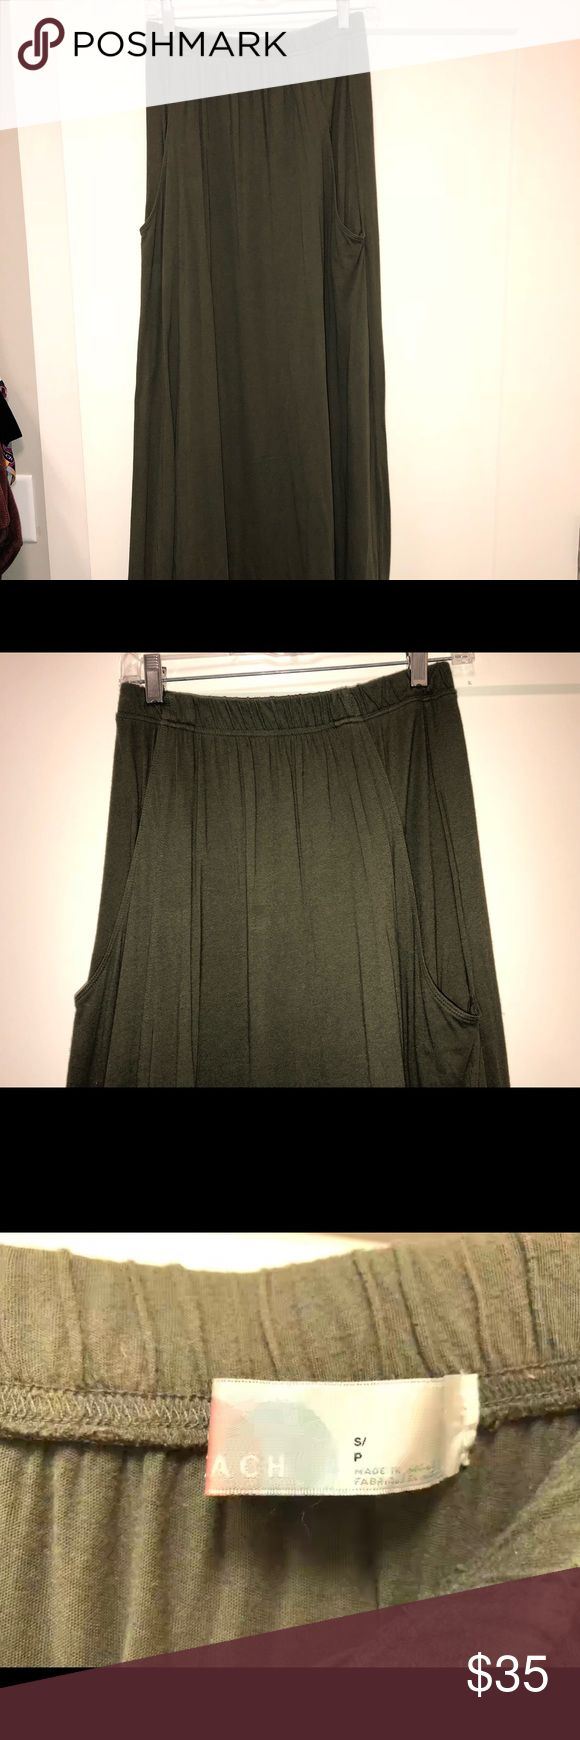 Free People olive maxi skirt Like new Free People Maxi Skirt. Size small and the best part. IT HAS POCKETS! This skirt goes great with everything. Boots, jean jacket, t-shirt, leather jacket, wedges, endless possibilities. The material is so soft. You will love this skirt! Free People Skirts Maxi